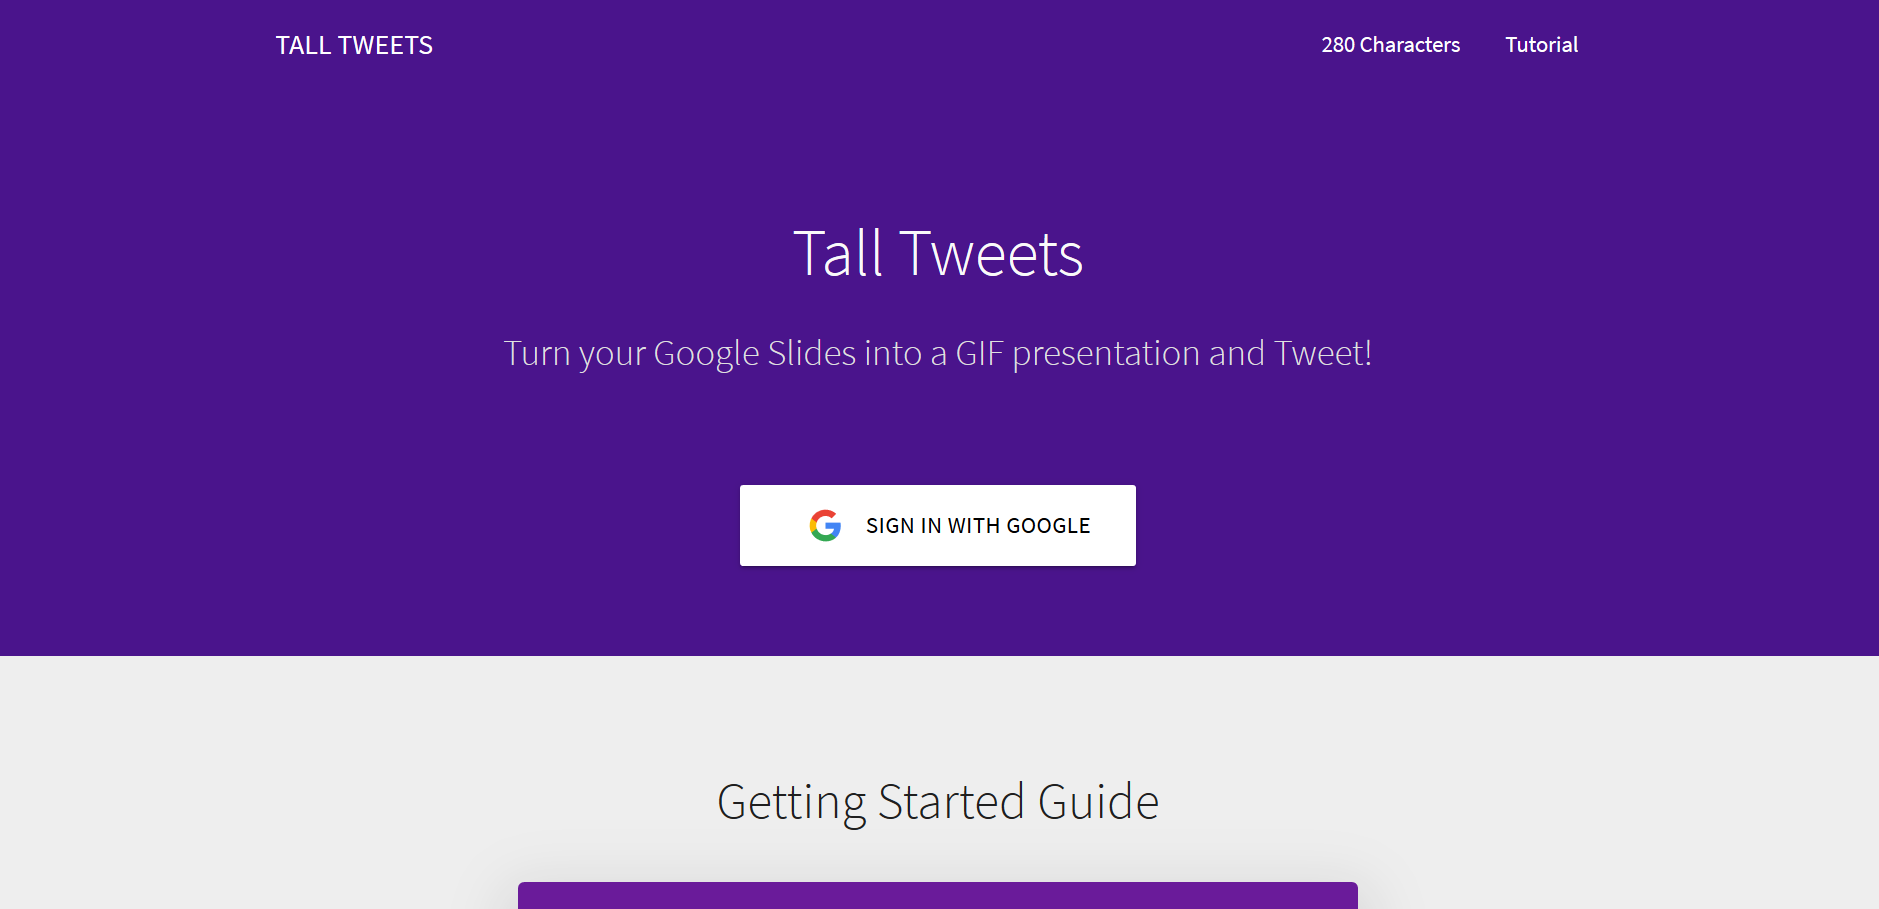 tall tweets an online app to convert google slides into gif and tweets